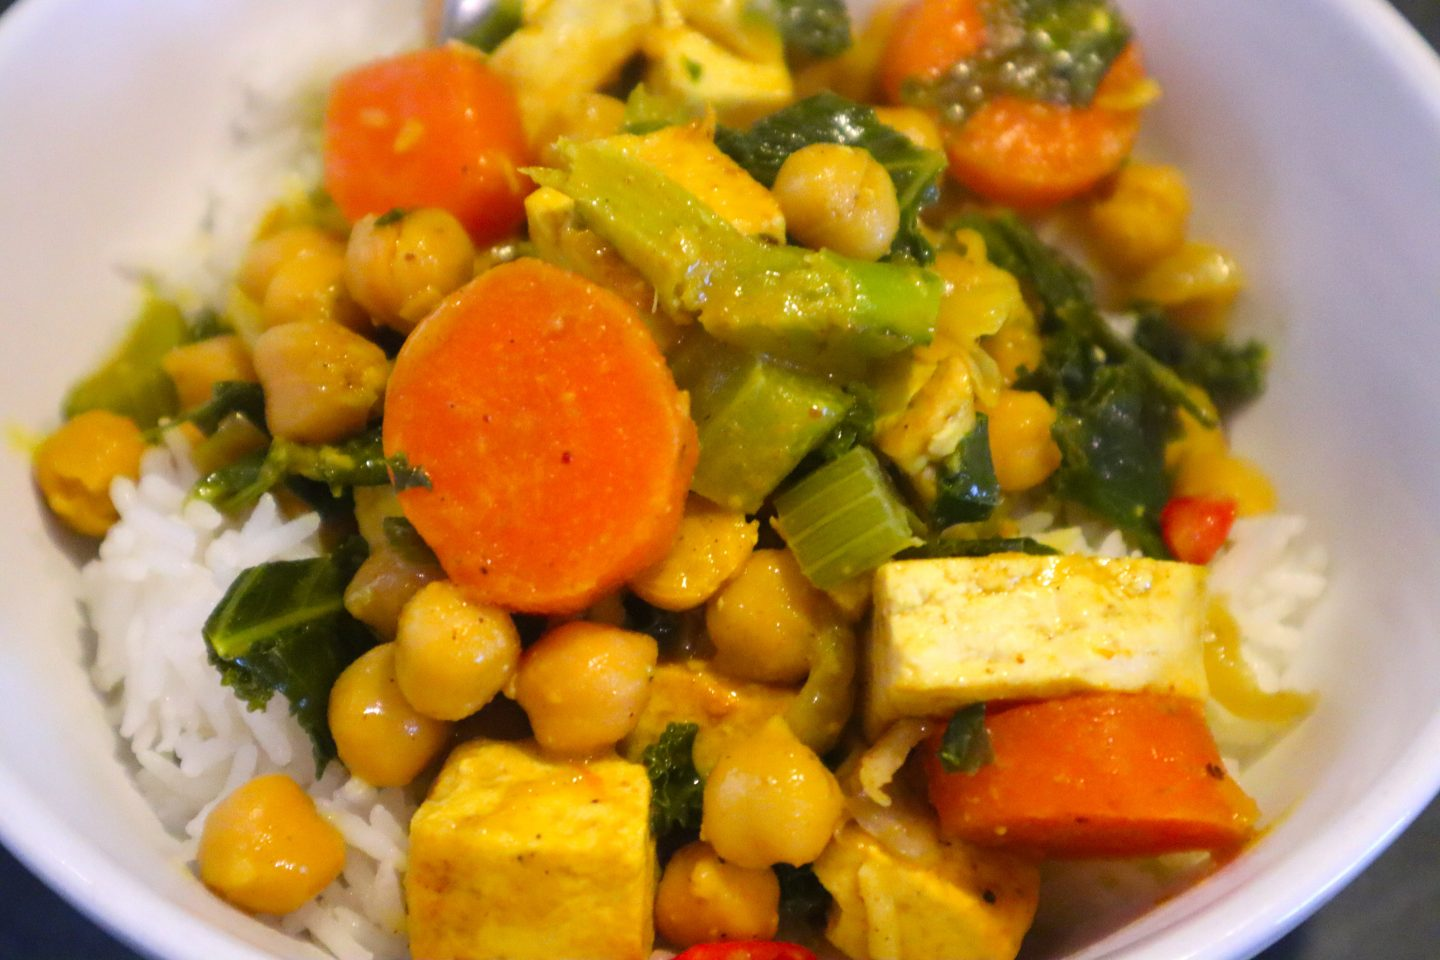 Curry in a vegan version with Tofu and Kale.